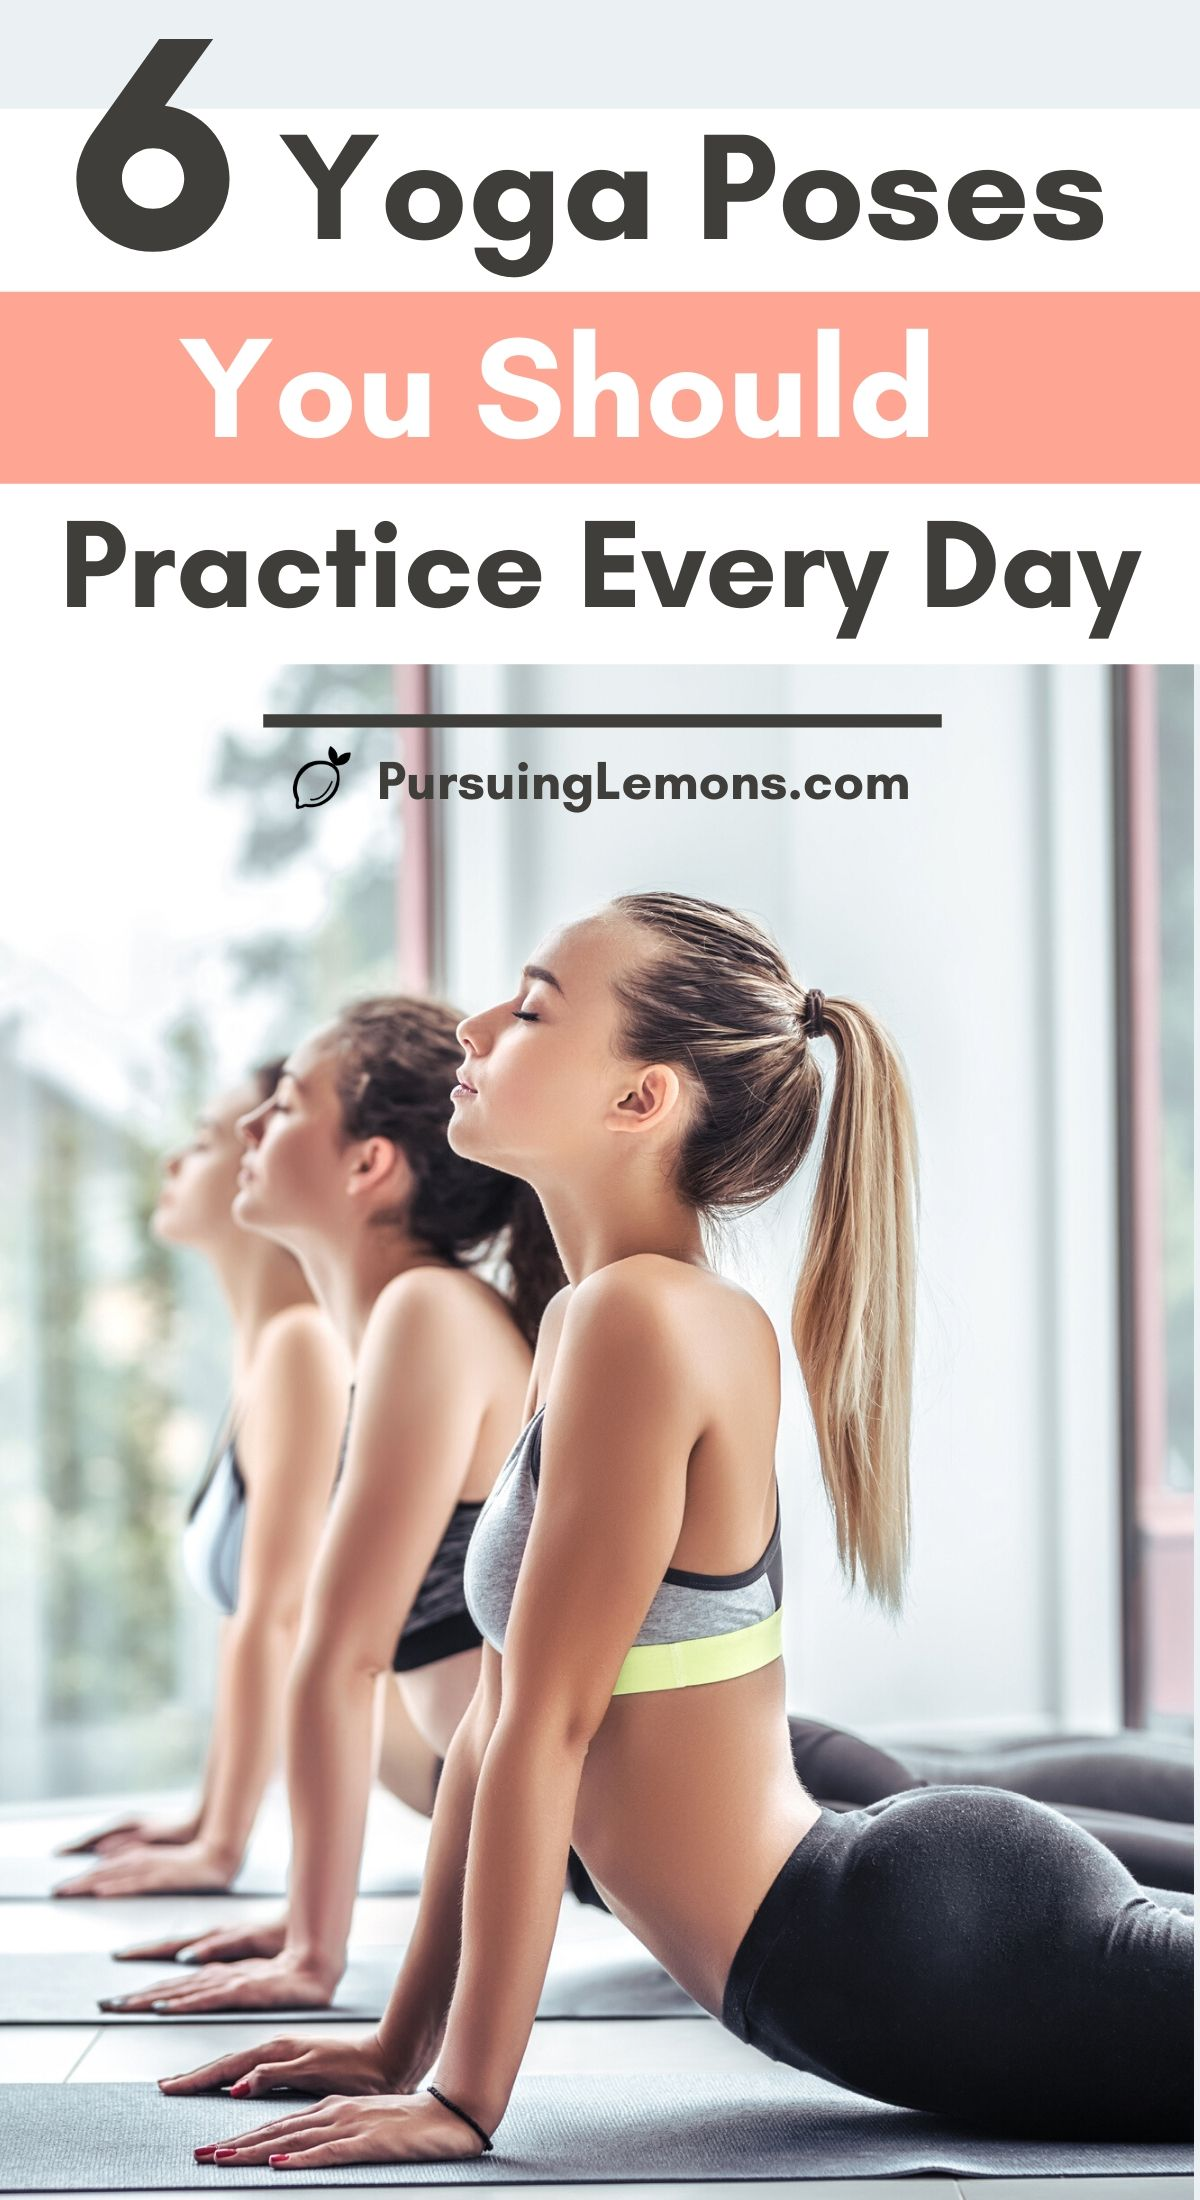 6 Yoga Poses You Should Practice Every Day | It doesn't matter if you are a yoga beginner or have never stepped on a yoga mat, if we had to pick 6 yoga poses to practice eveyday, these will do! #yogaposes #everyday #yoga